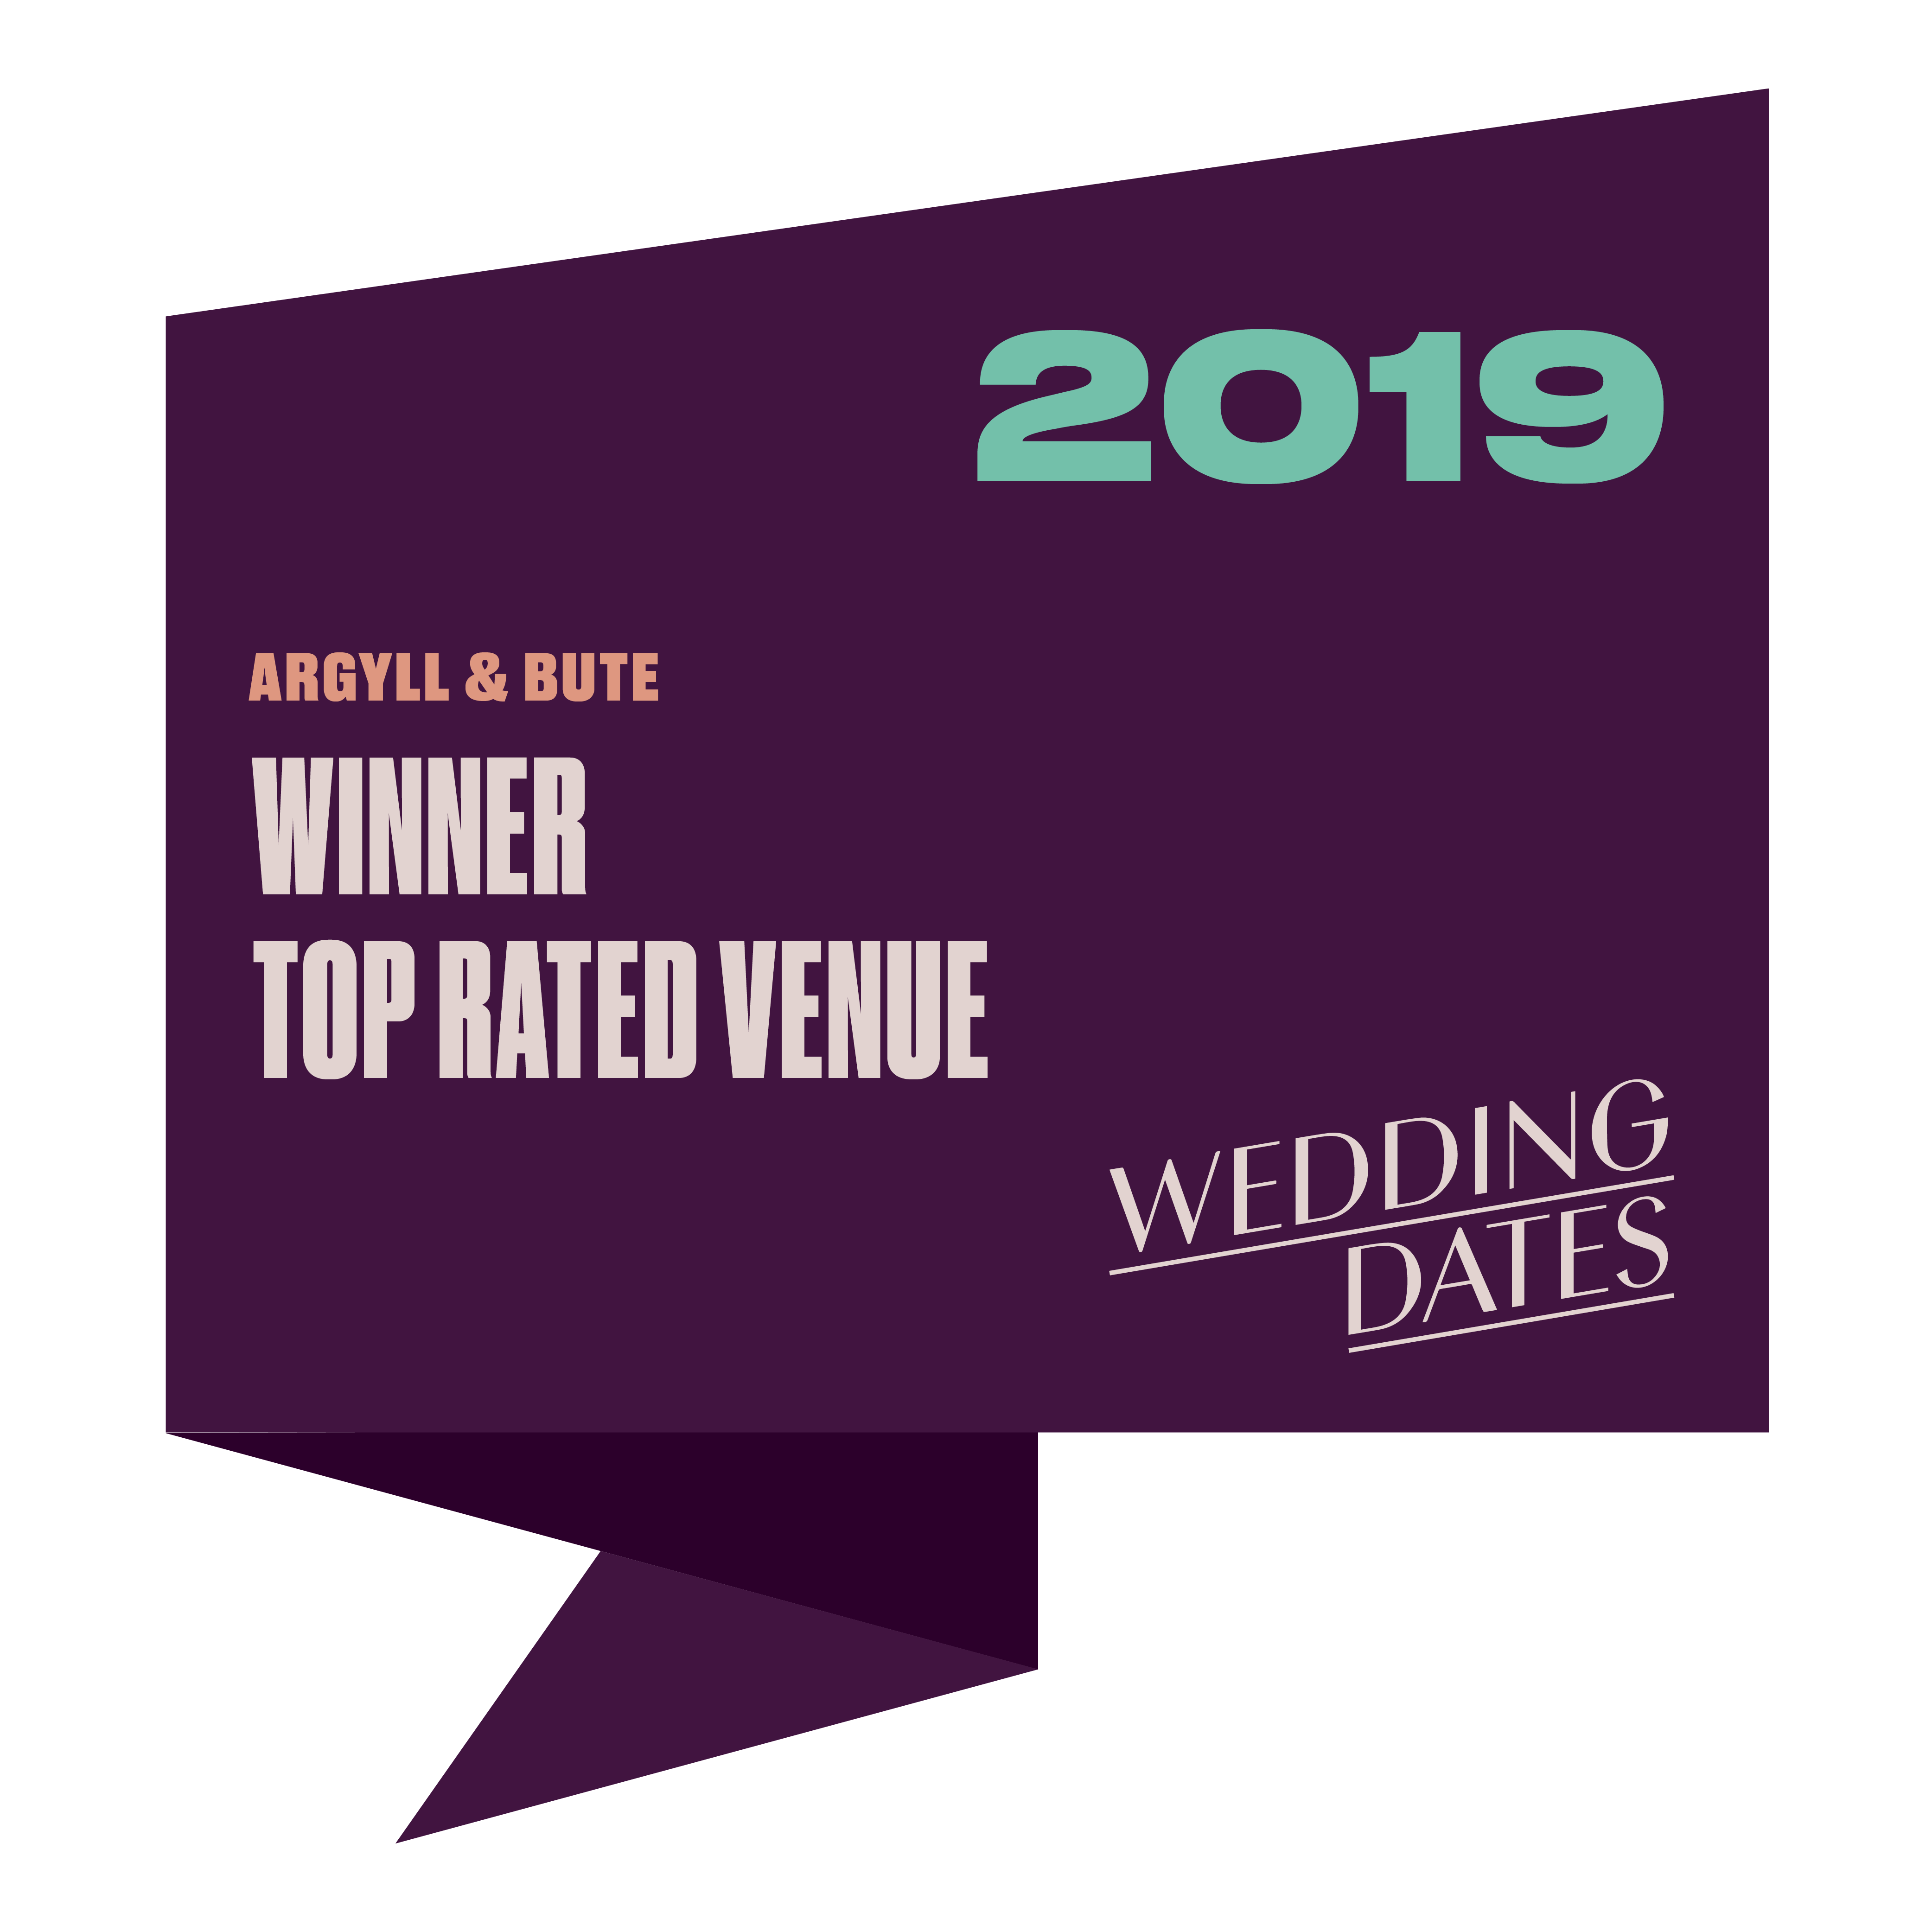 Top Rated Wedding Venues in Argyll & Bute 2019